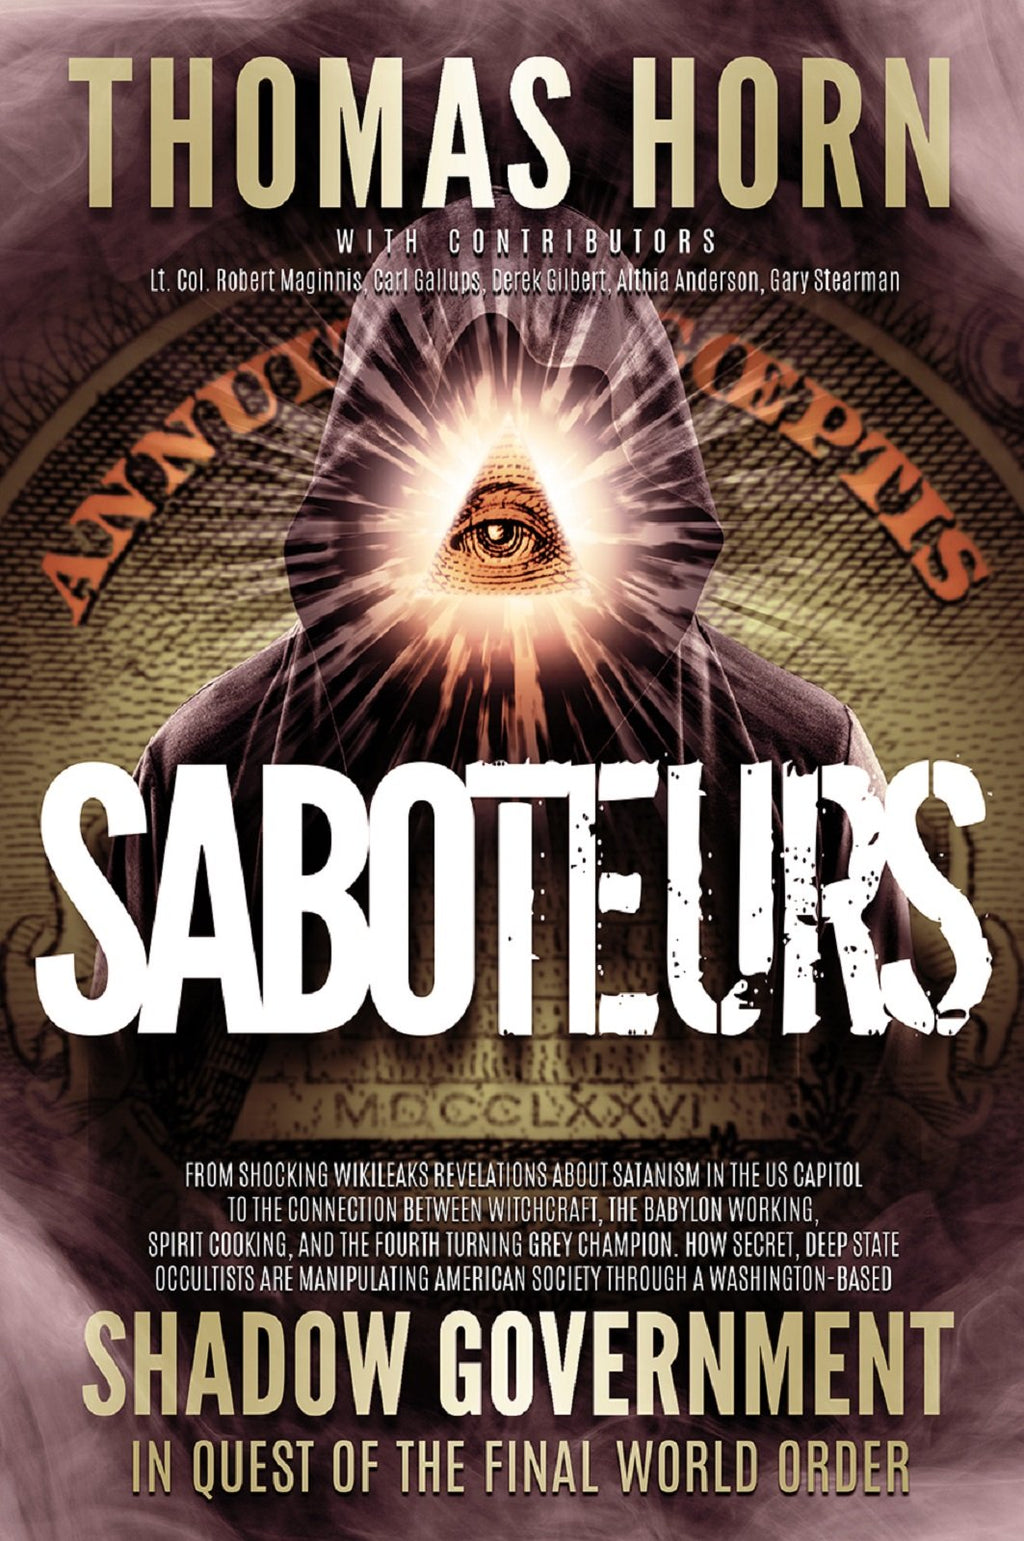 Half-Case of Saboteurs